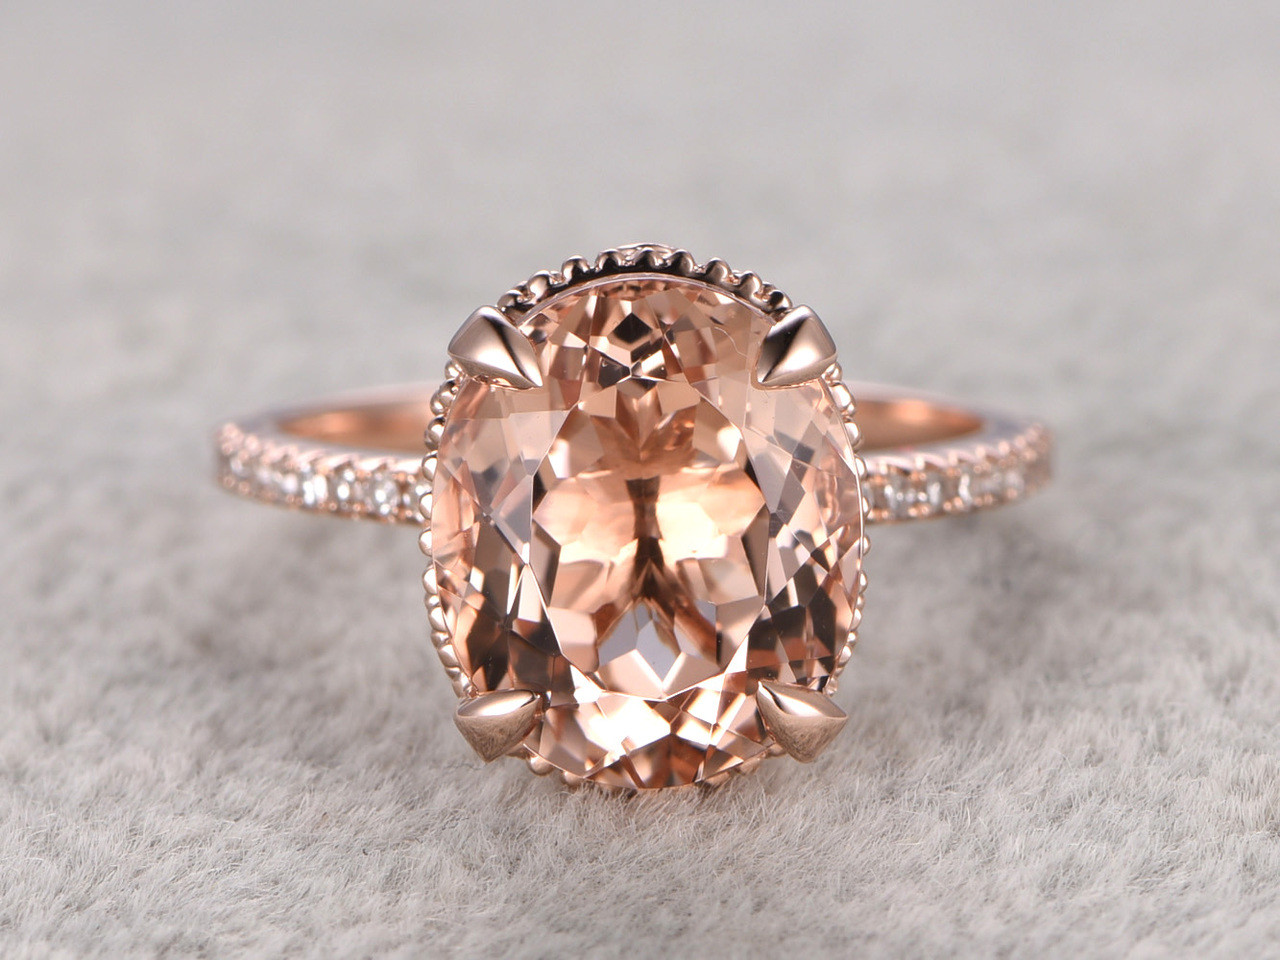 3 Carat Morganite Engagement Ring,Morganite Engagement Ring | BBBGEM